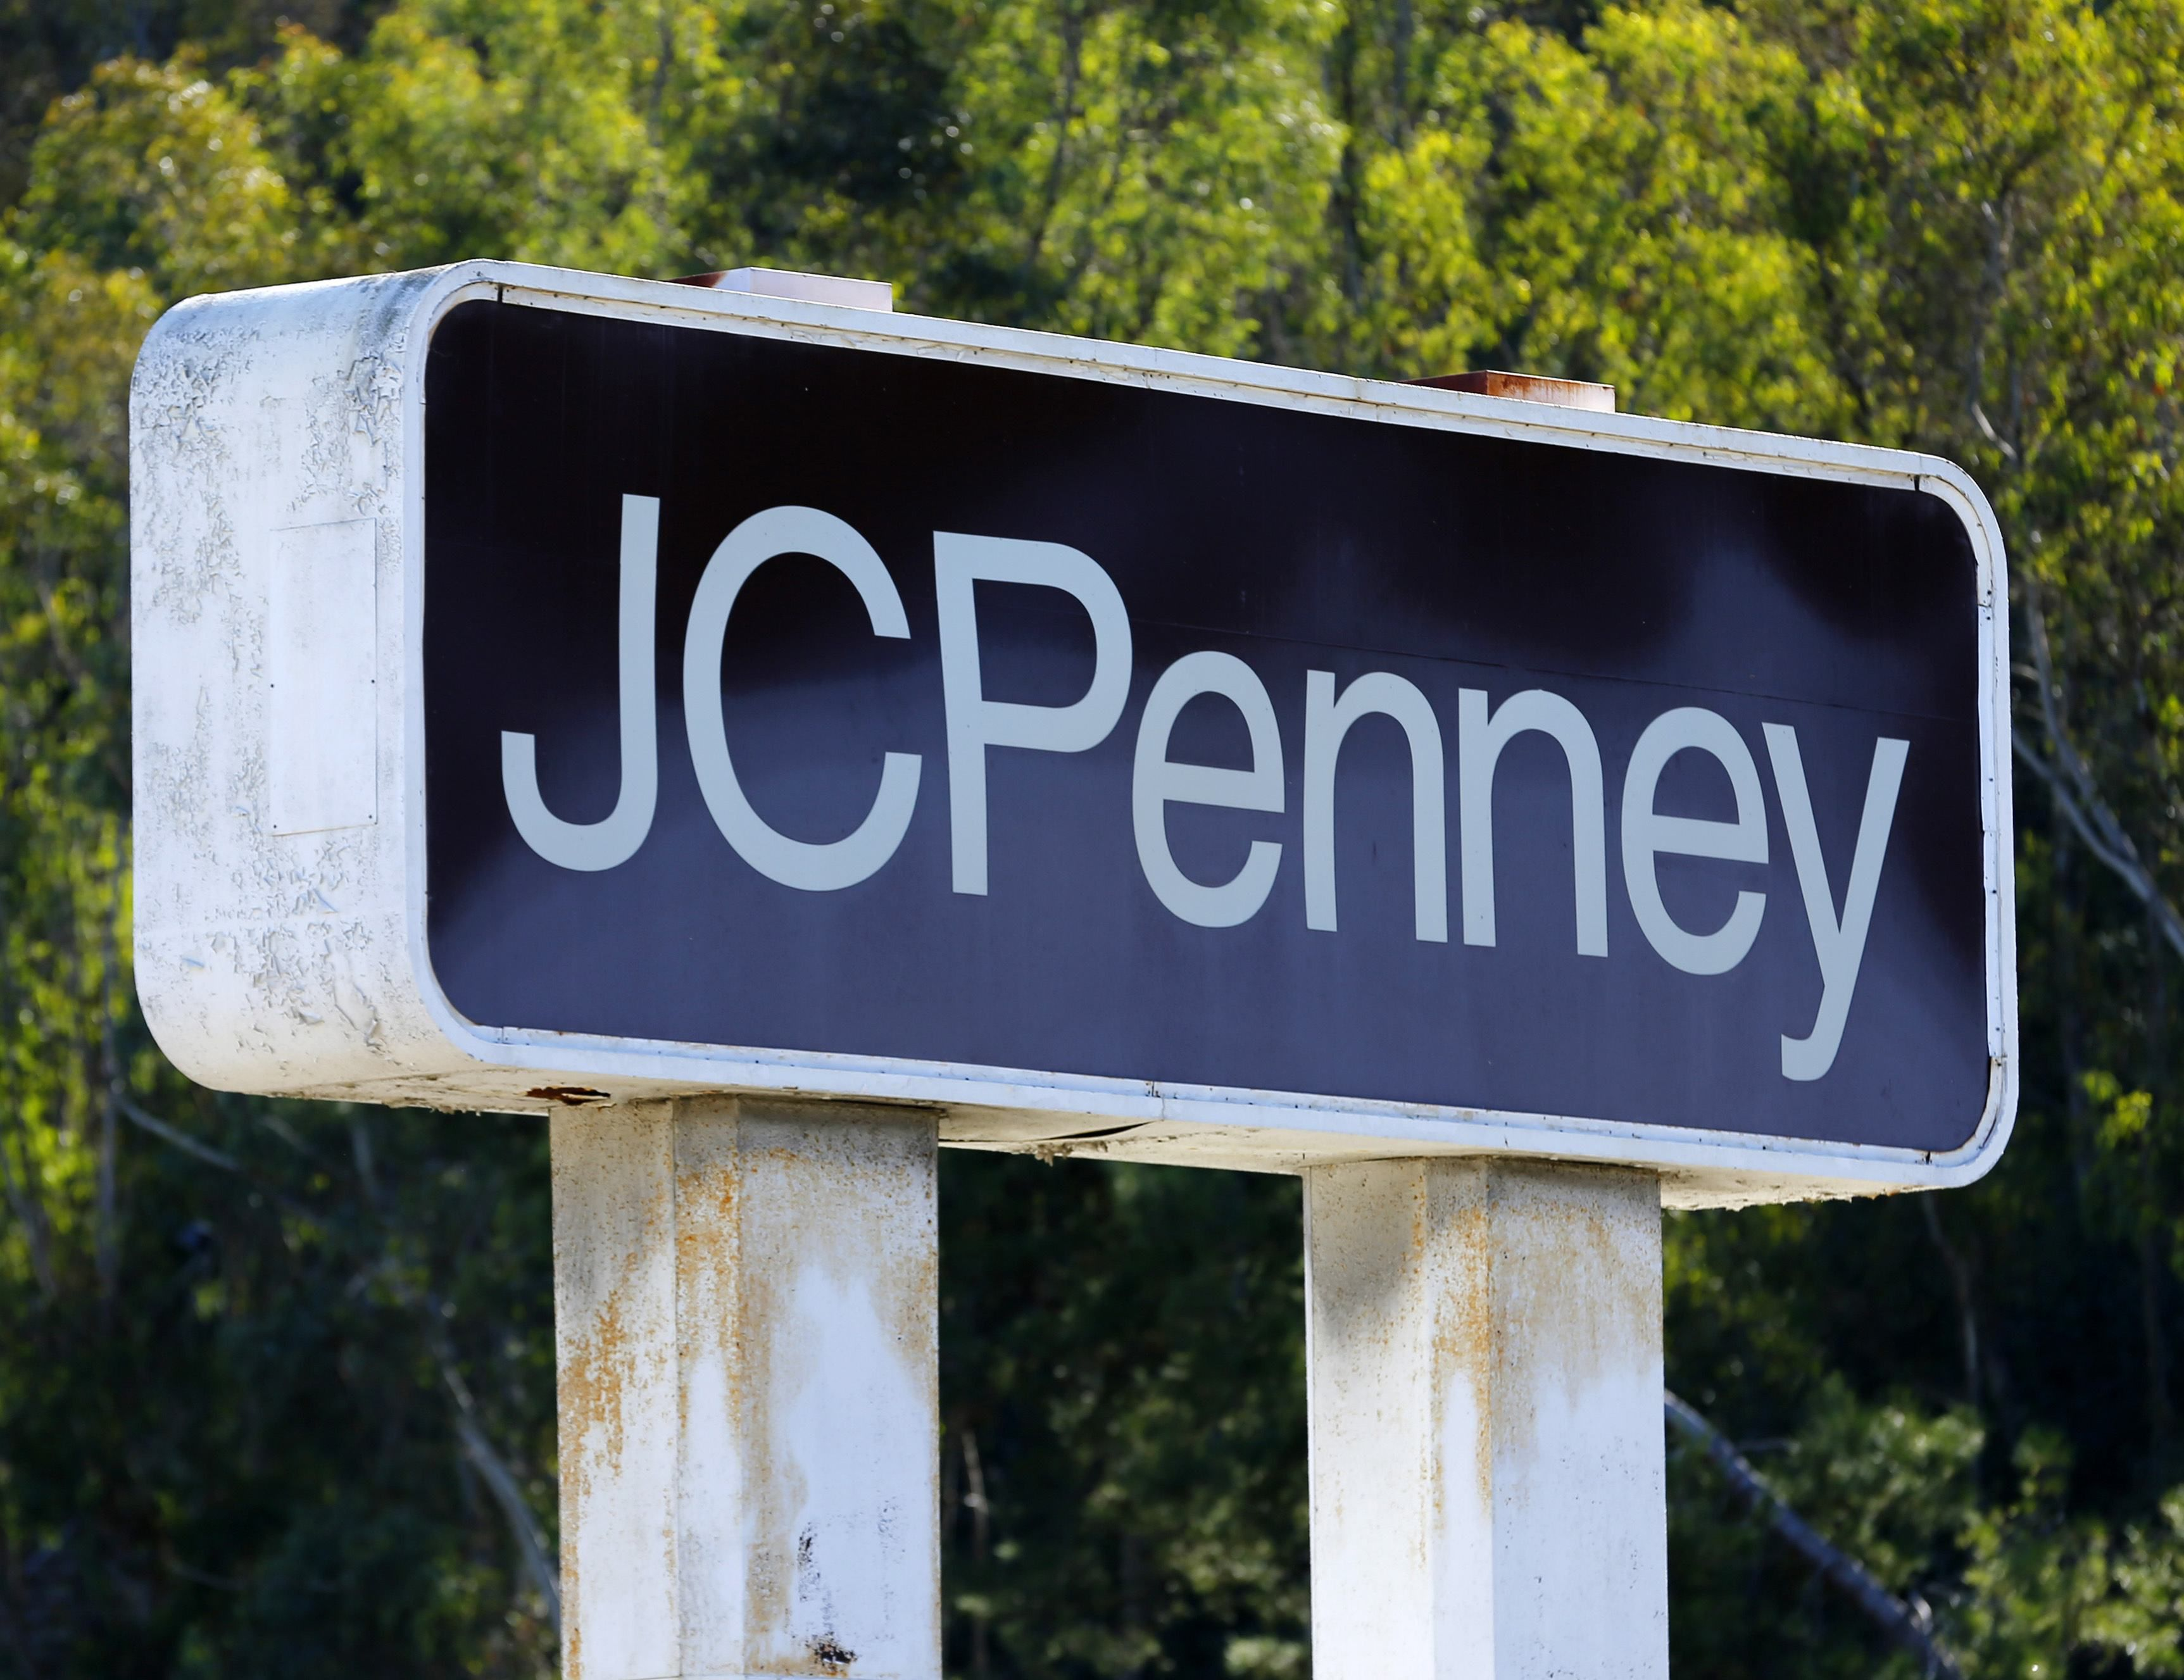 The full list of 138 J C  Penney stores closing around the US - The